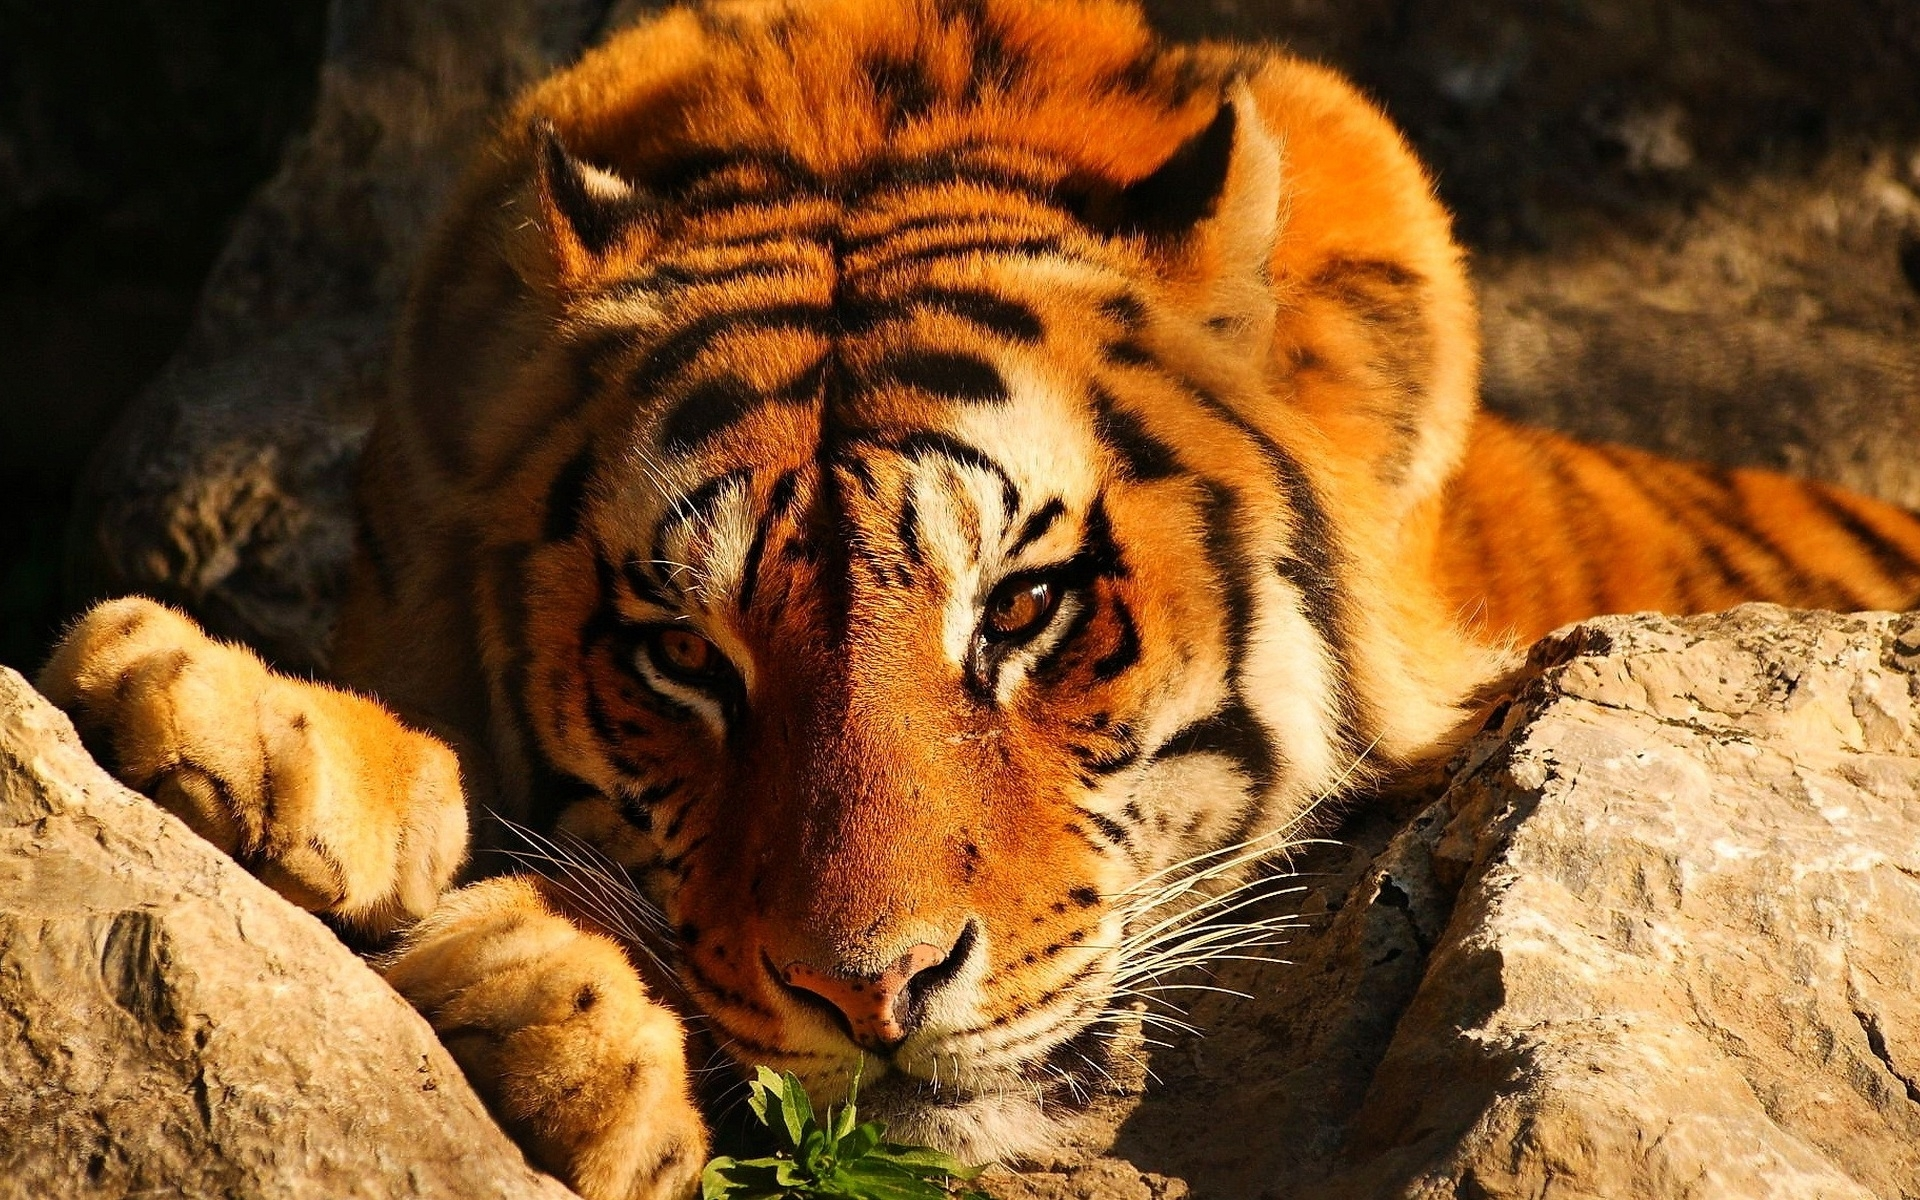 40780 download wallpaper Animals, Tigers screensavers and pictures for free